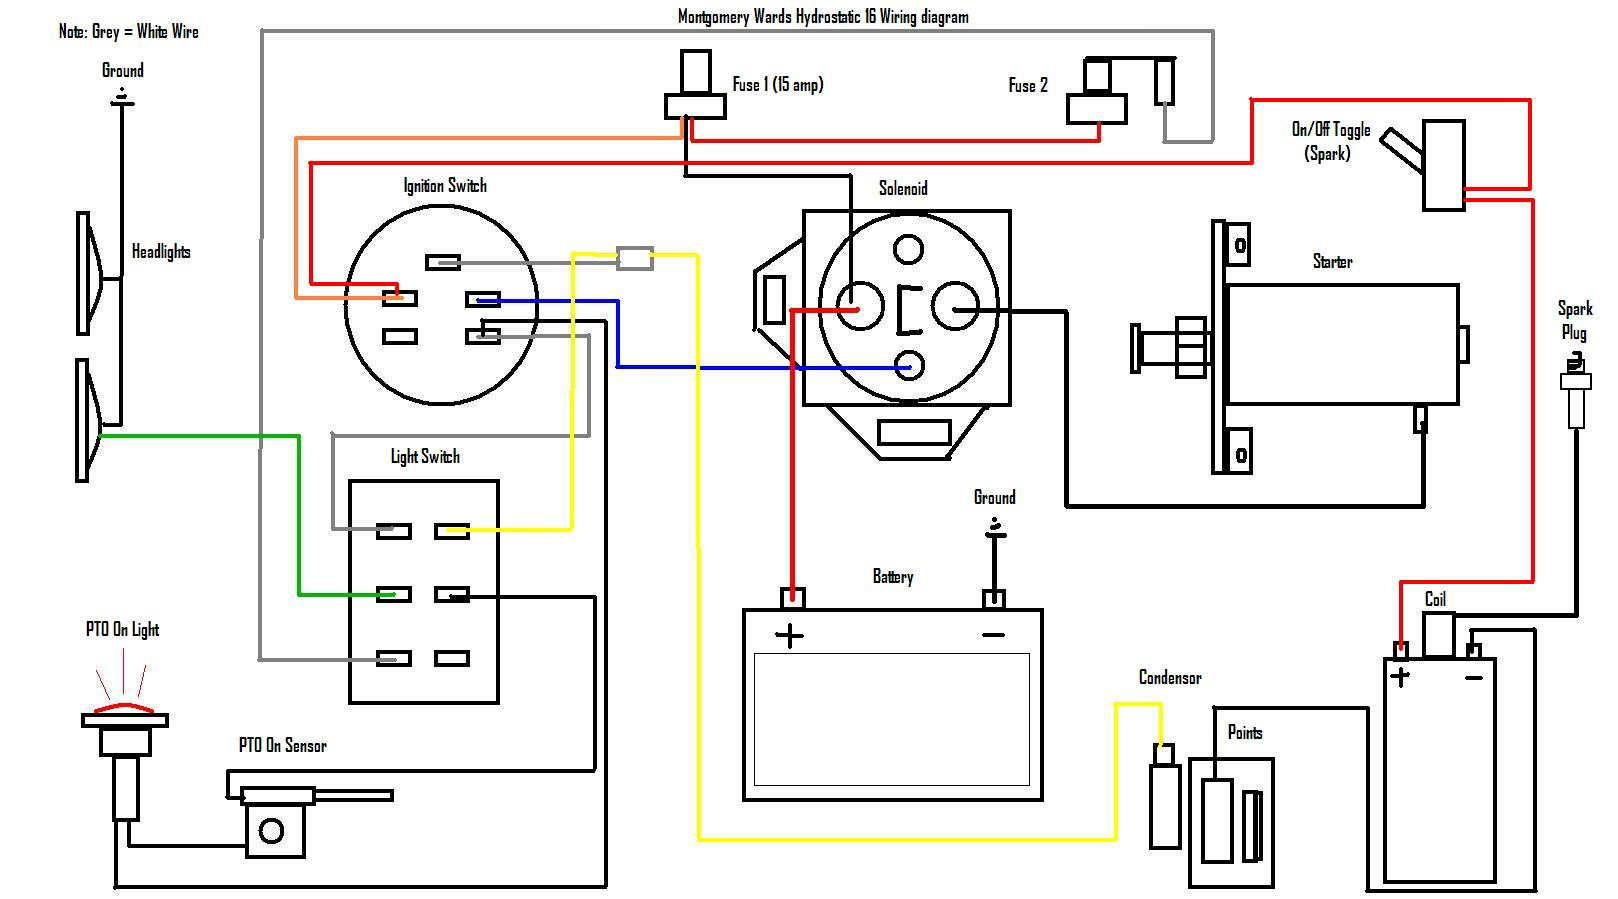 Briggs Stratton Engine Wiring Diagram | Hastalavista - Briggs And Stratton Wiring Diagram 18 Hp